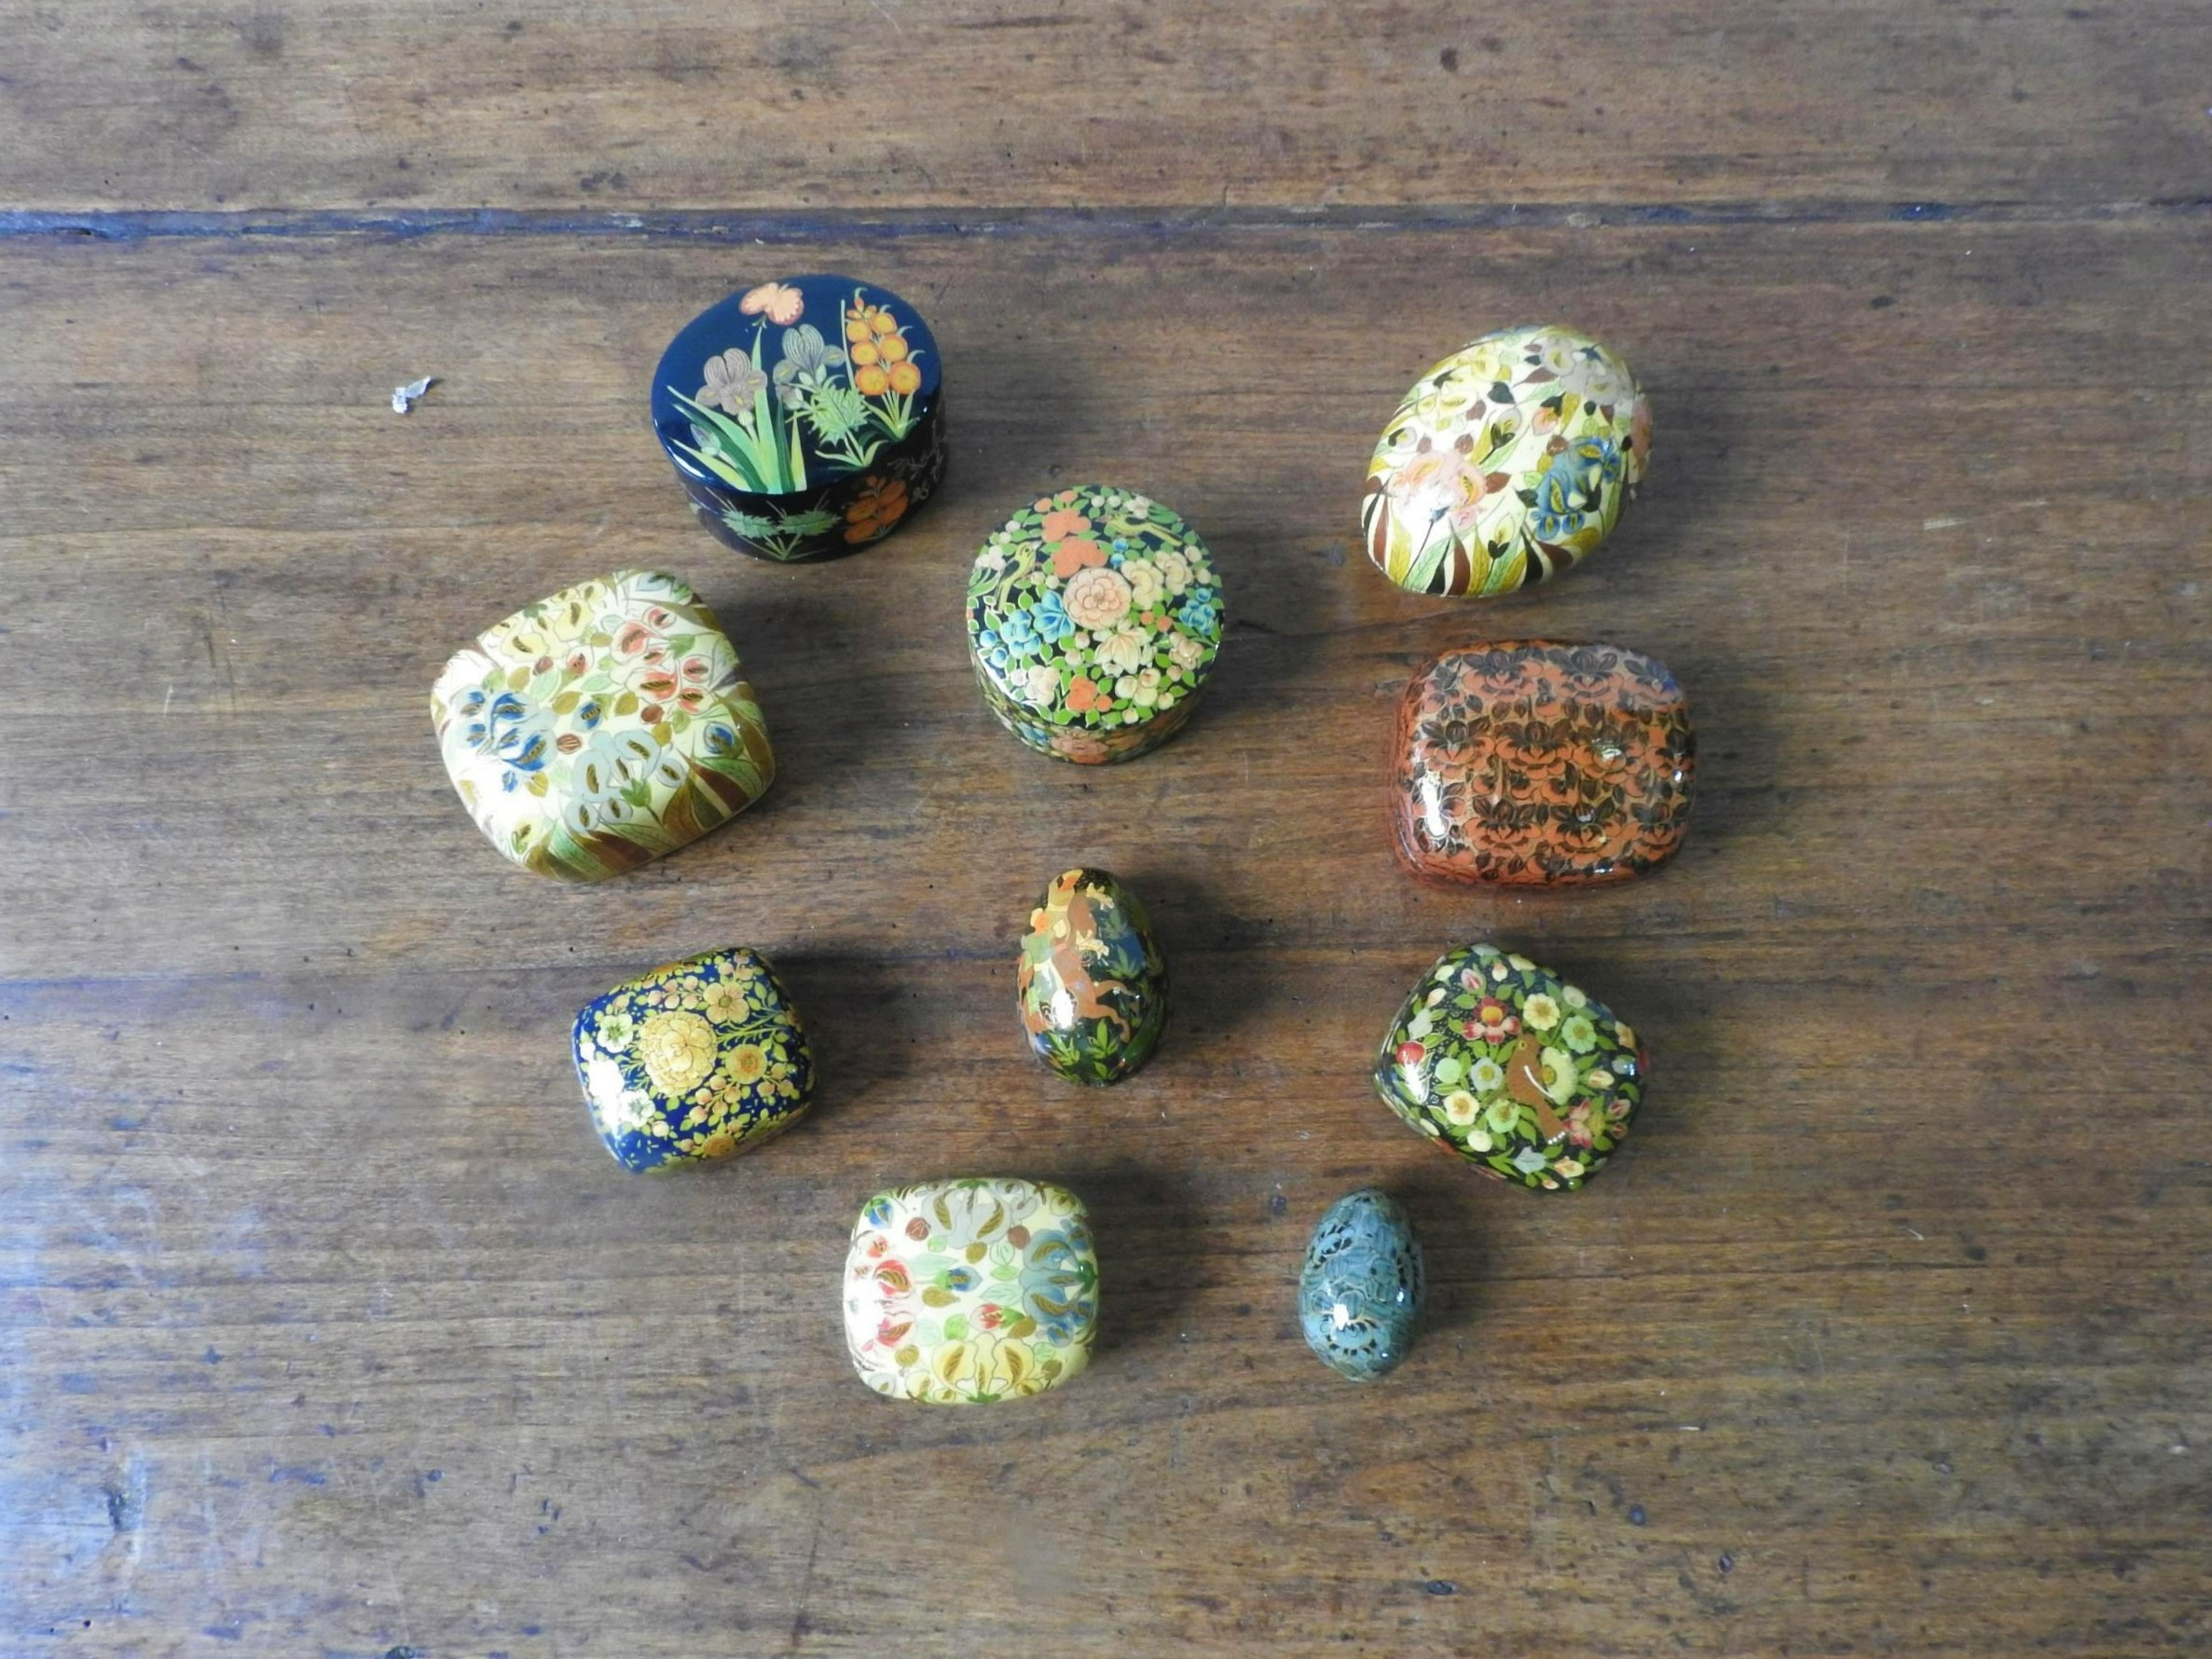 EIGHT PAINTED PAPIER MACHE TRINKET BOXES AND TWO EGG ORNAMENTS - Image 2 of 2